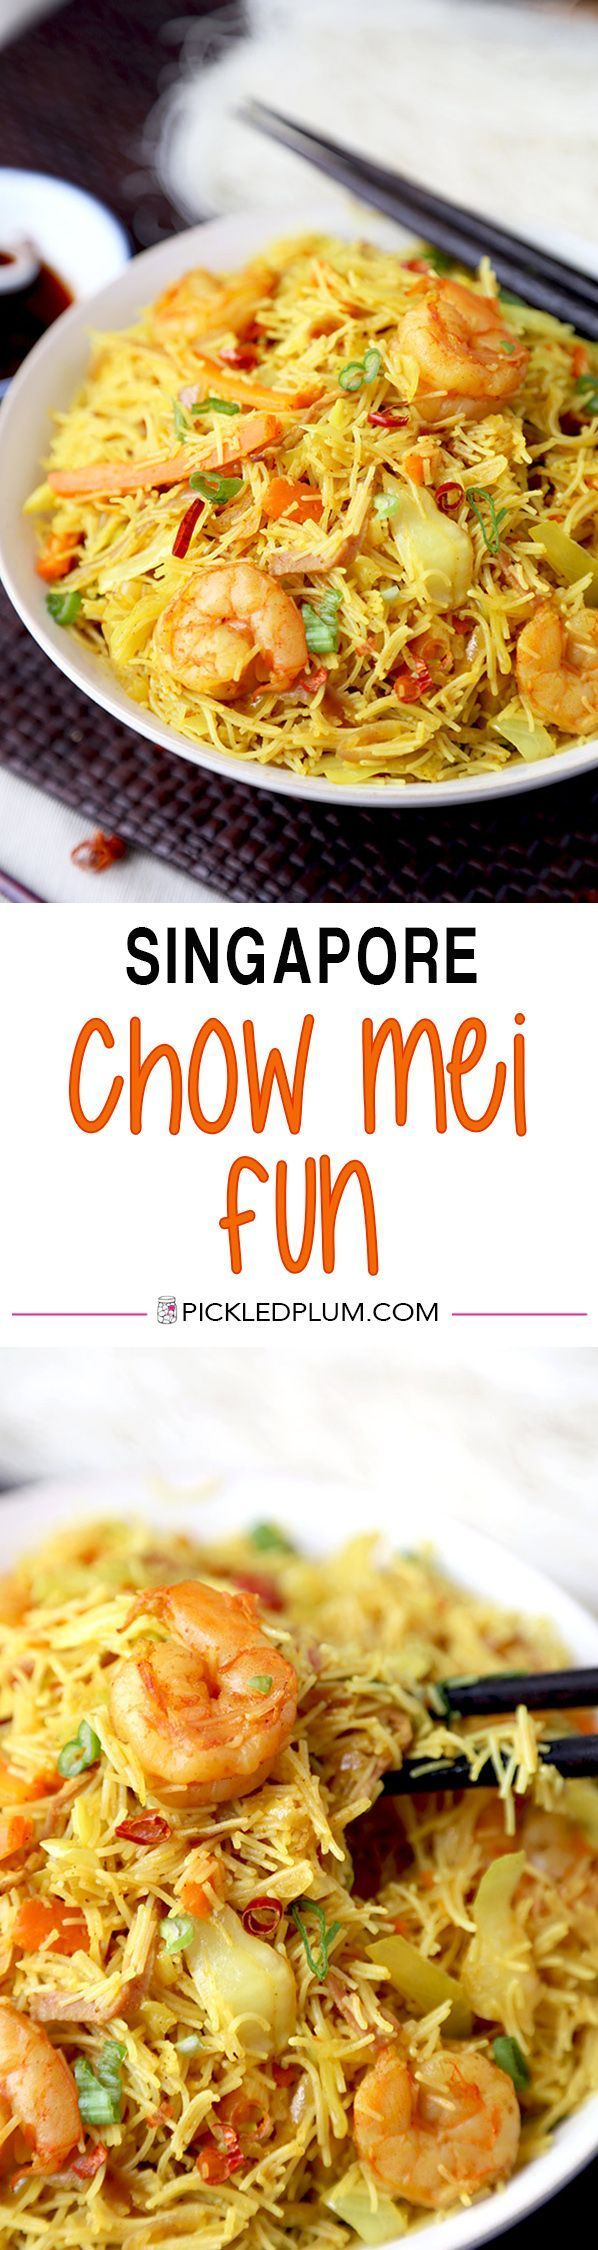 Singapore Chow Mei Fun - This is a simplified and better than takeout Singapore chow mei fun recipe your whole family will love. Ready in 20 minutes from start to finish! Easy, Noodles, Chinese Food